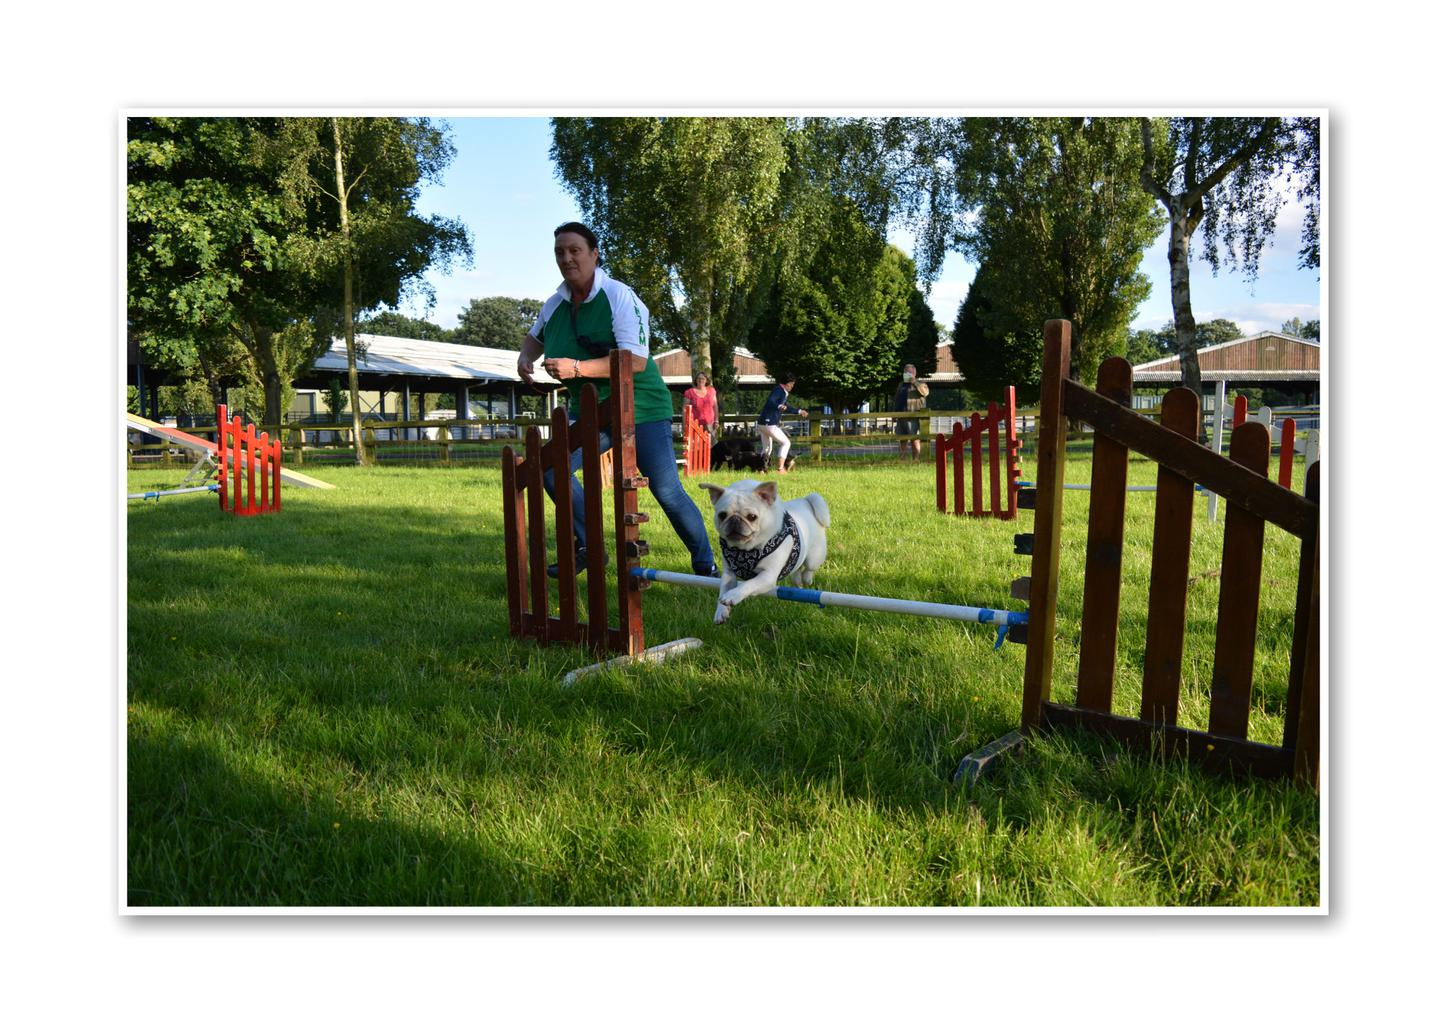 Susannah Chalmers and her rescue Pug Marsha in action. Tags: active dog agility dog fit dog healthy dog Pug